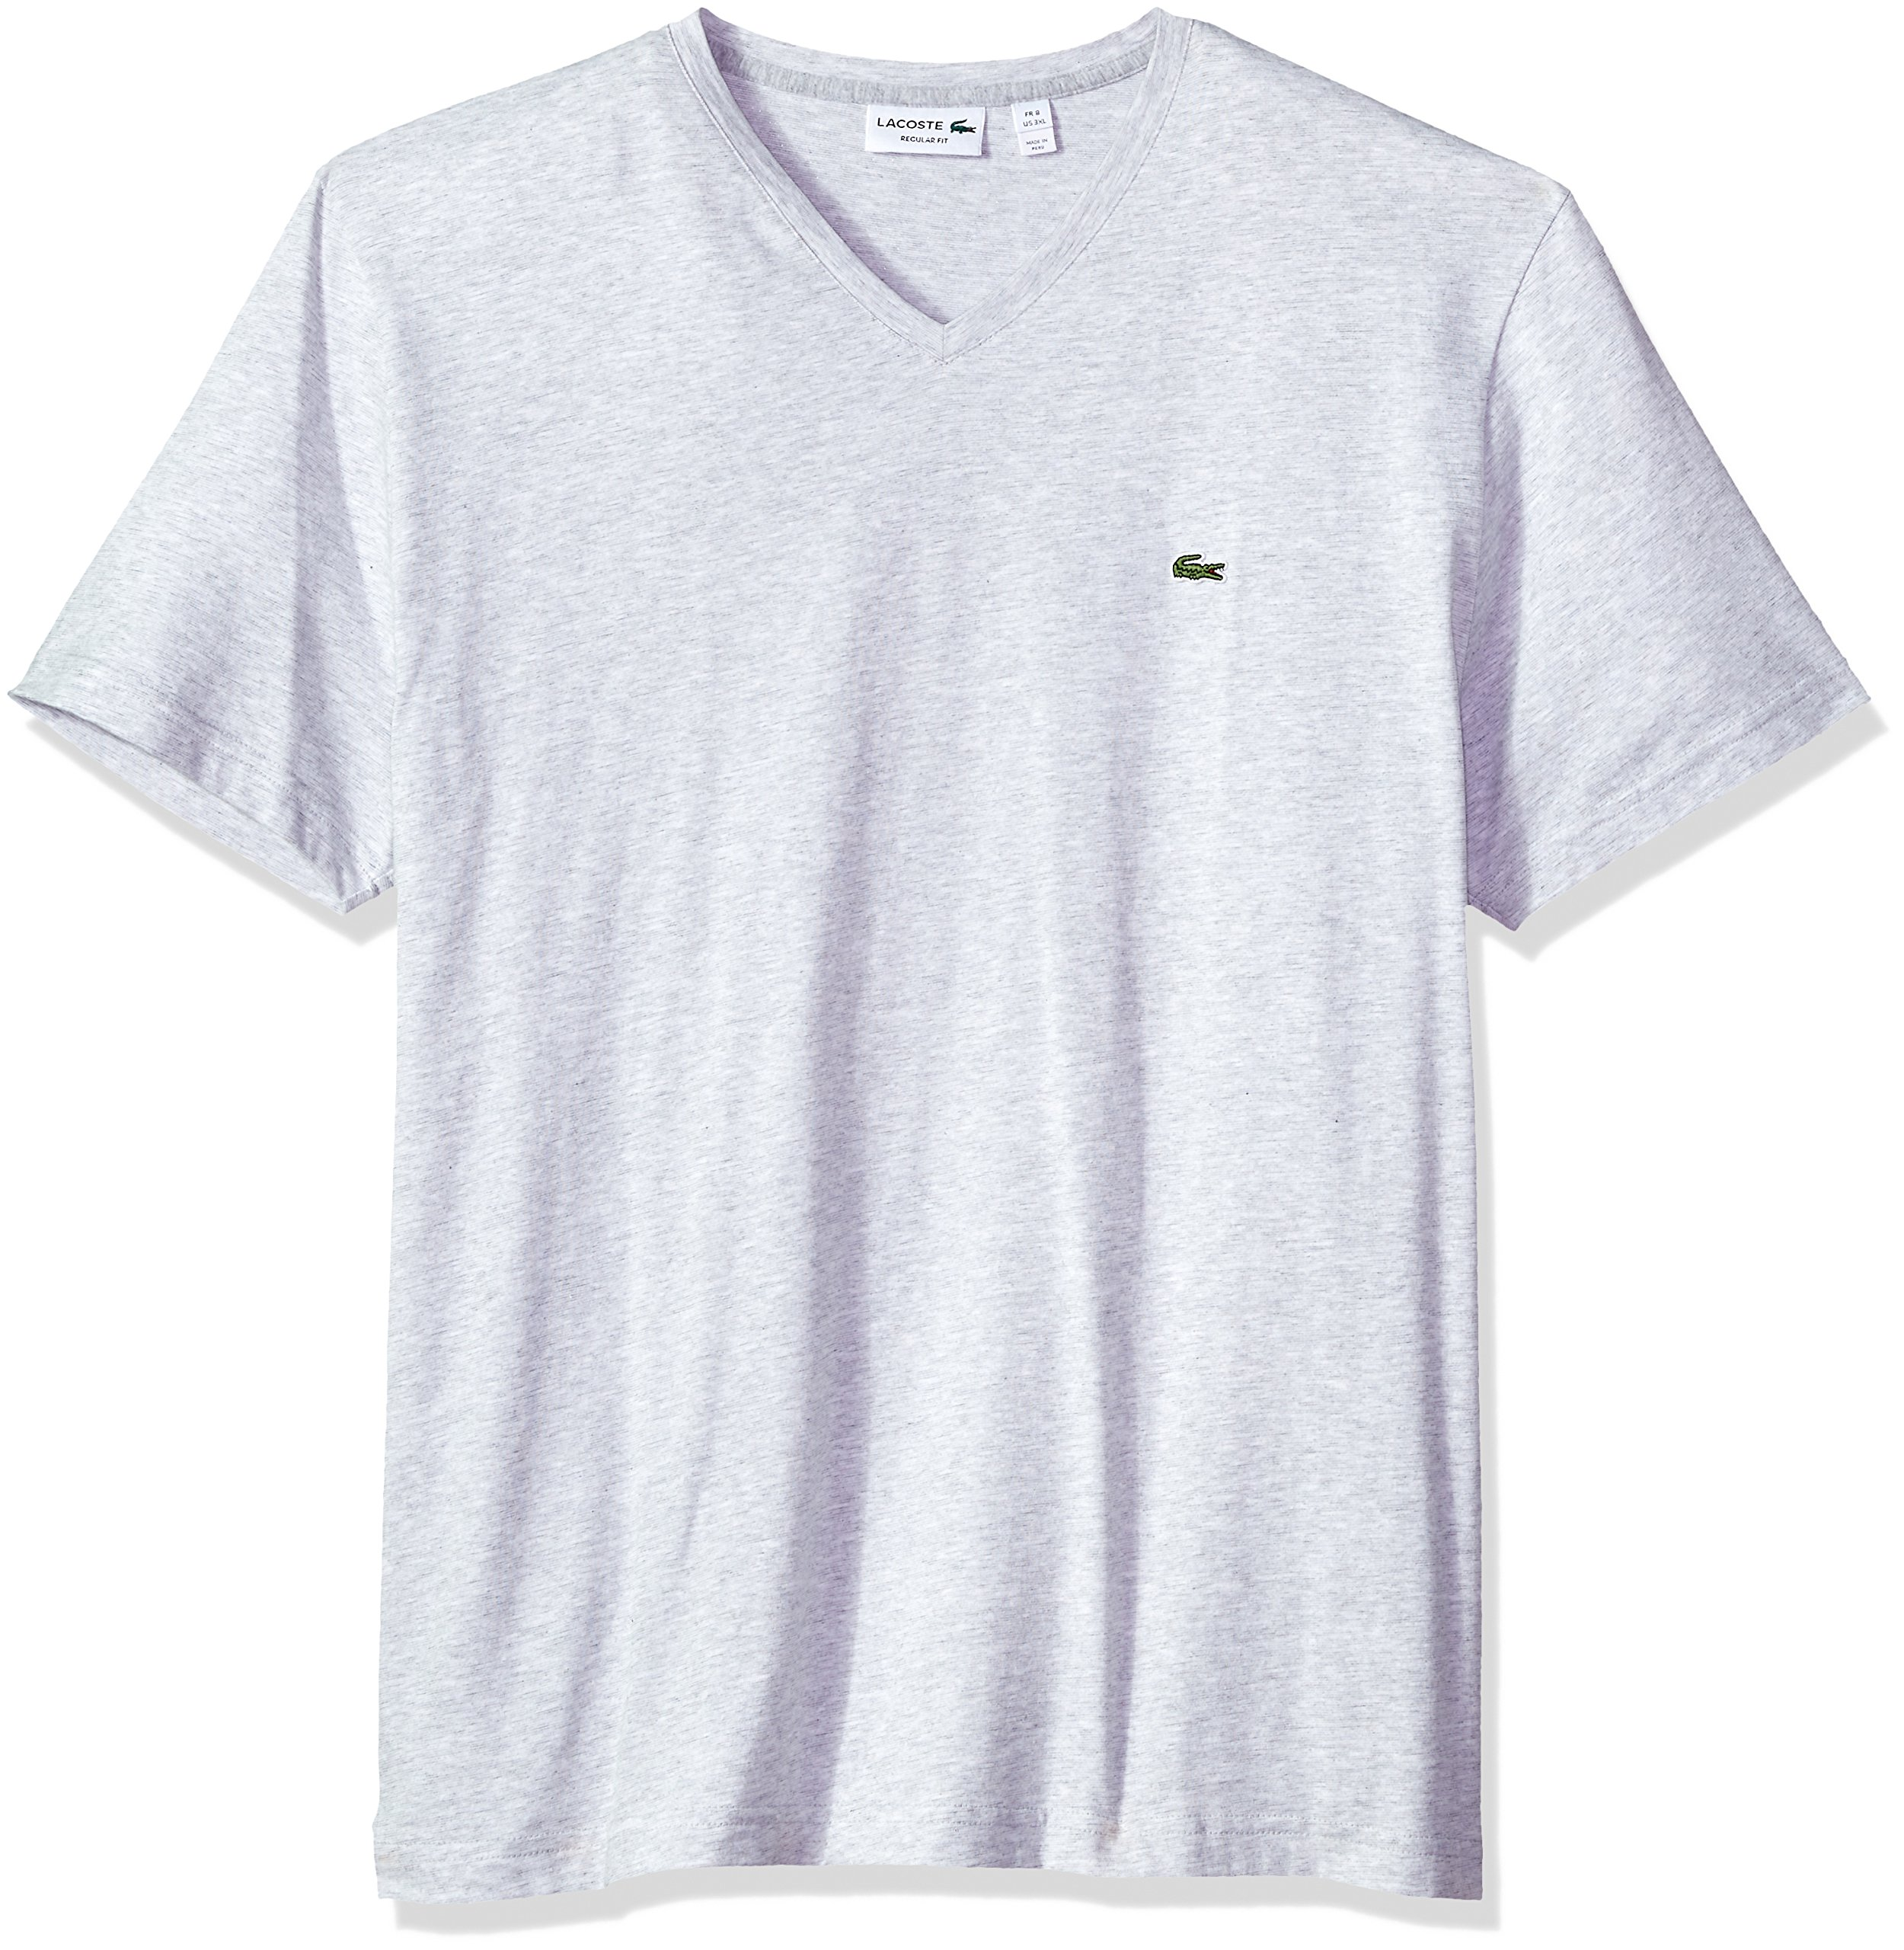 Lacoste Men's Fine Stripe Short Sleeve T-Shirt, TH6810, Silver Chine/White, XX-Large